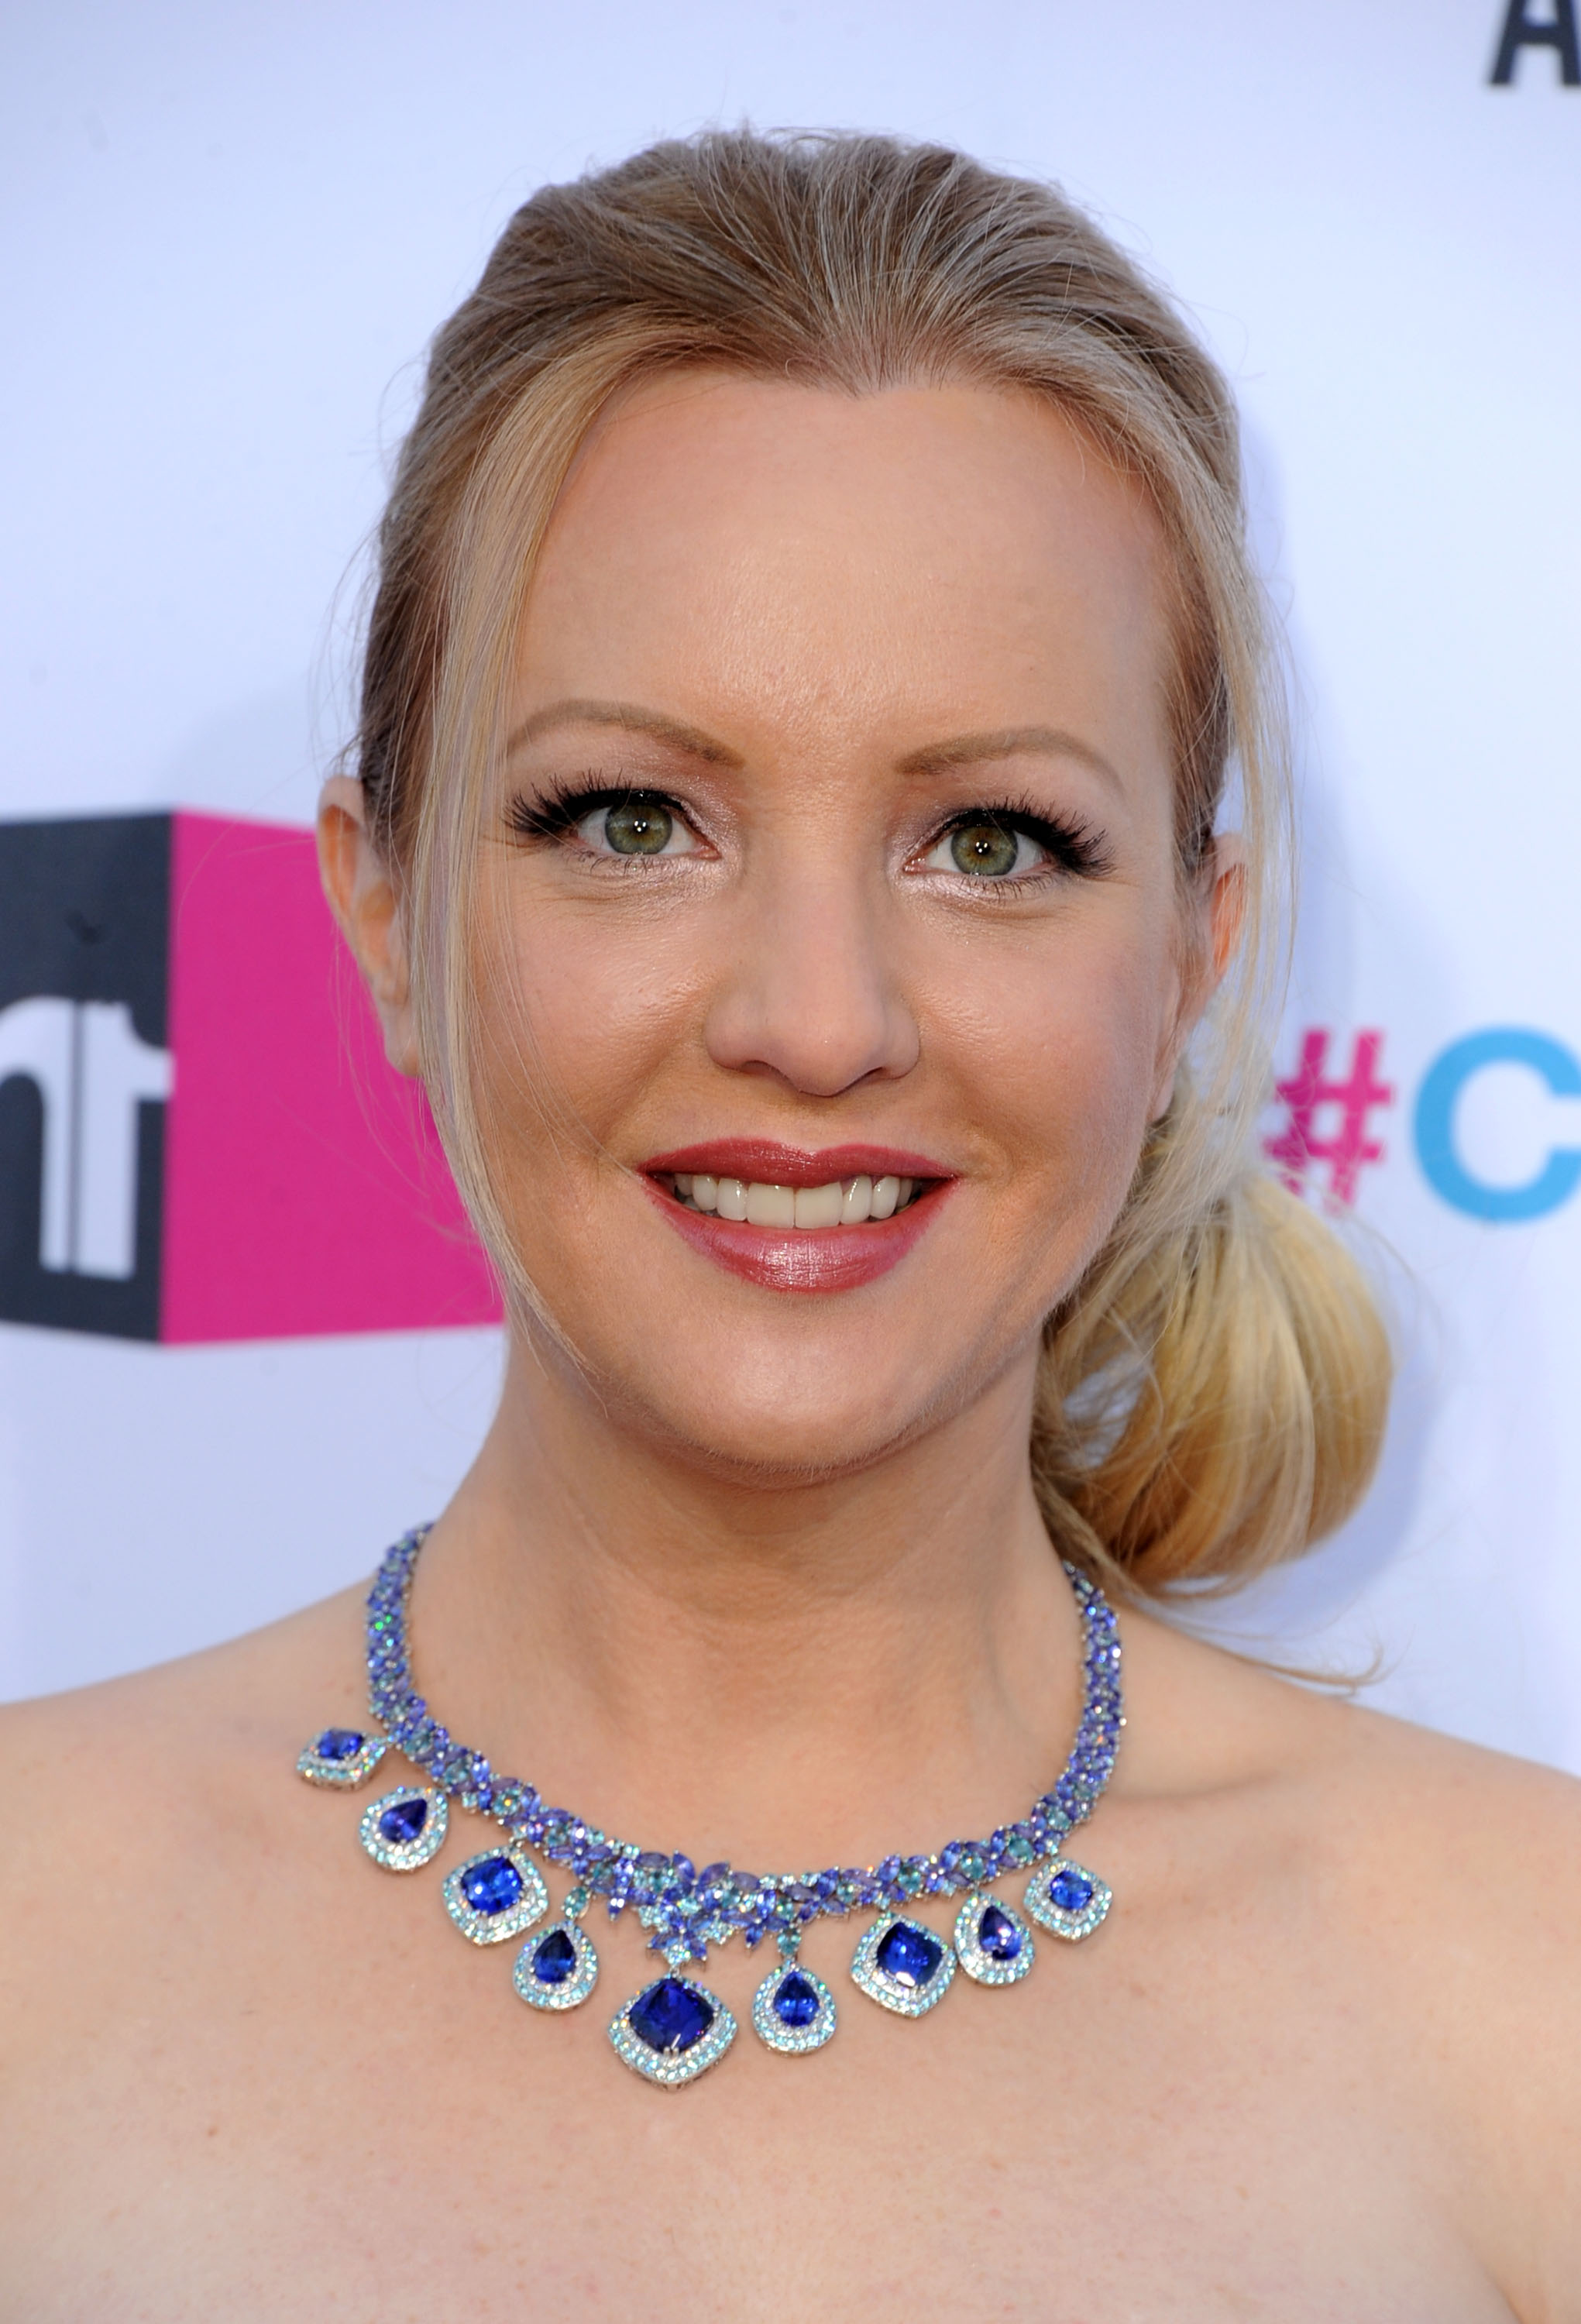 Wendi McLendon-Covey showed off her necklace on the red carpet.